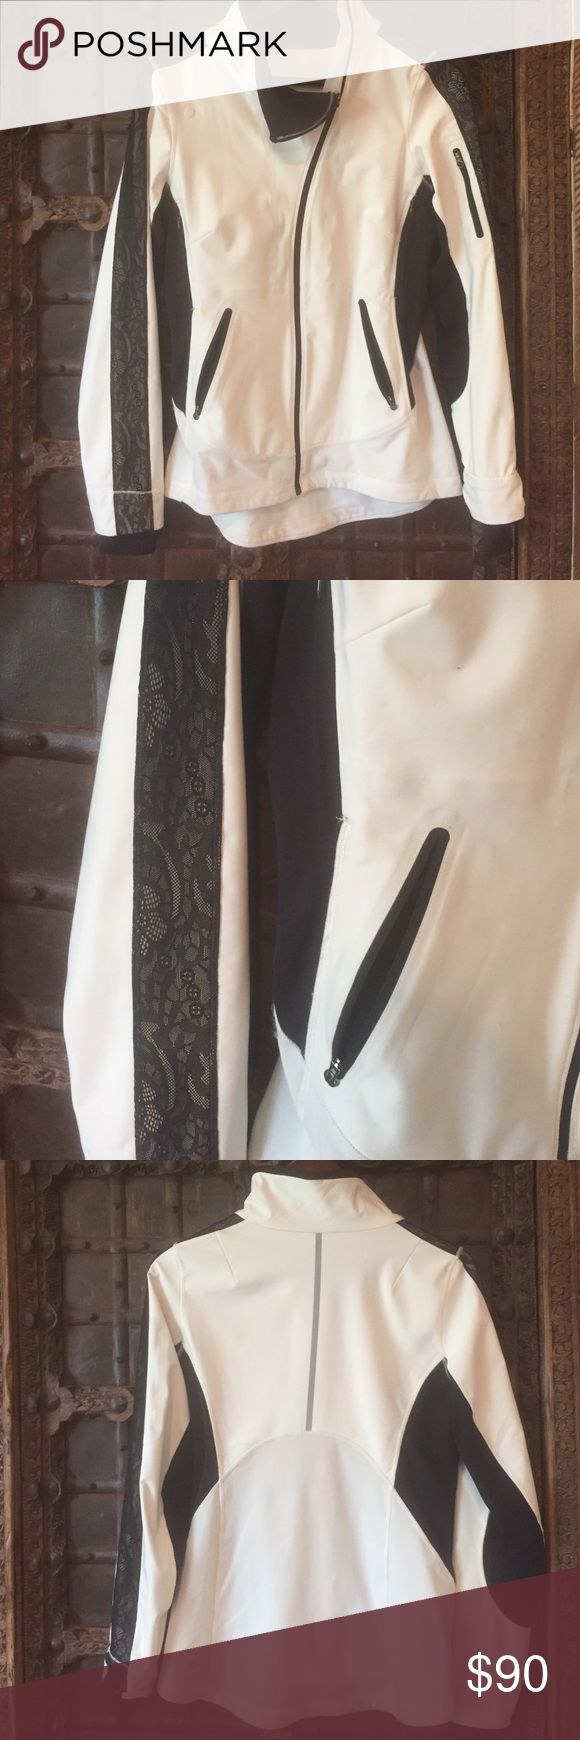 Lululemon Addict Draft Dodger Jacket Size 6 Lululemon Addict Draft Dodger jacket. Very cute Lululemon jacket size 6. Off-white with black accents and black lace down the arms. Lightweight with warm trim. Thumb holes. lululemon athletica Jackets & Coats